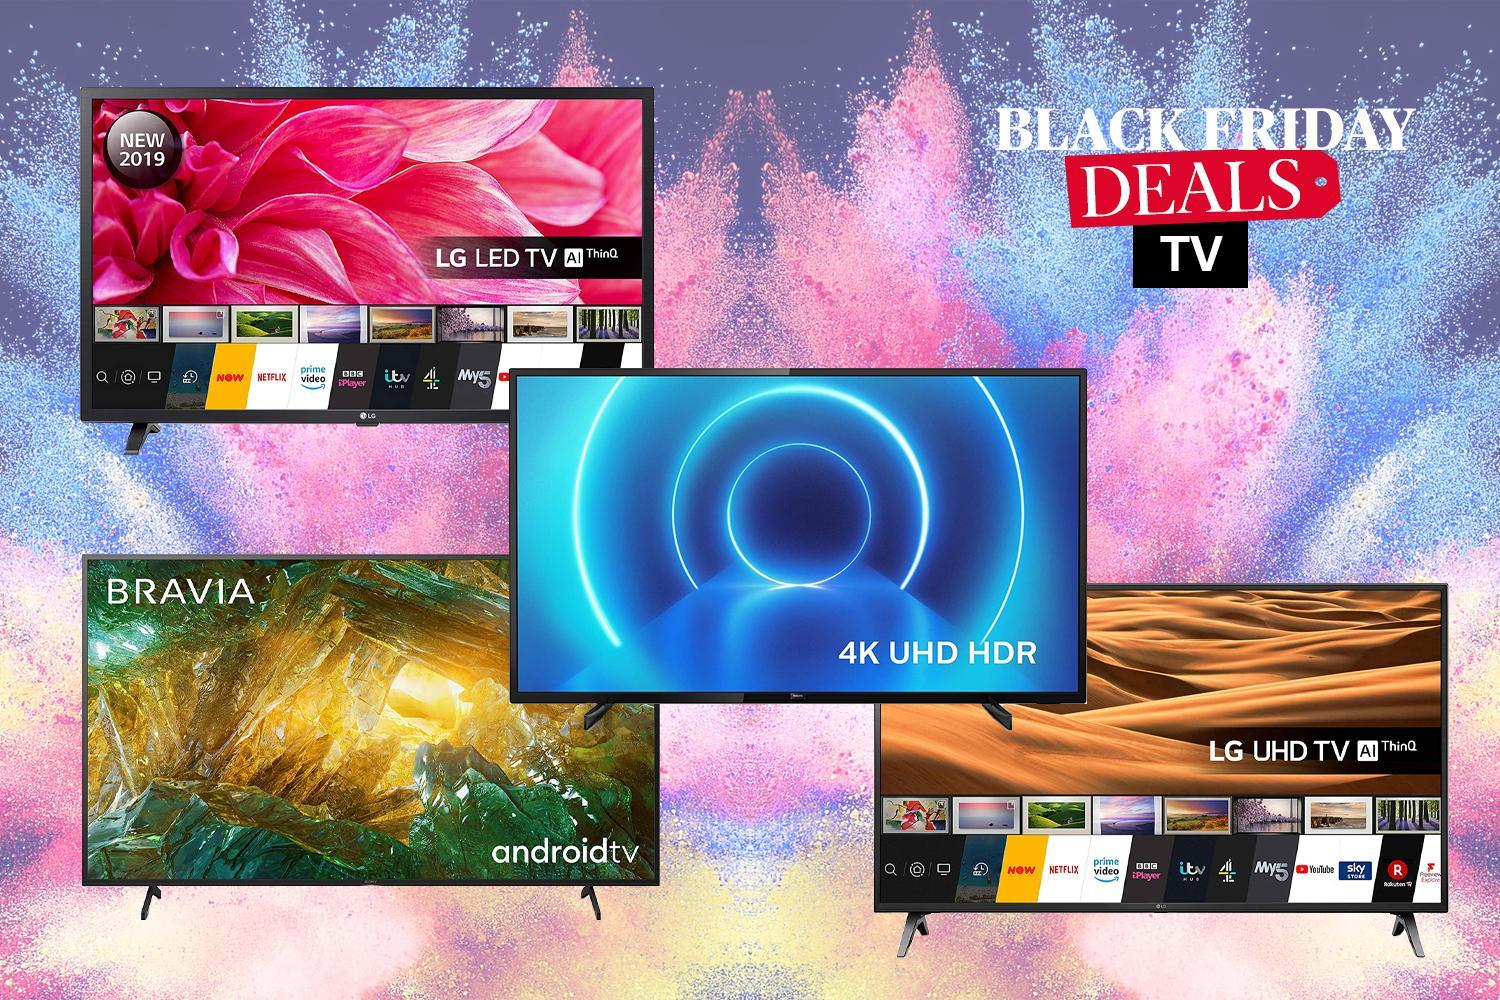 Best Black Friday TV deals 2020: Offers on Samsung, LG and more